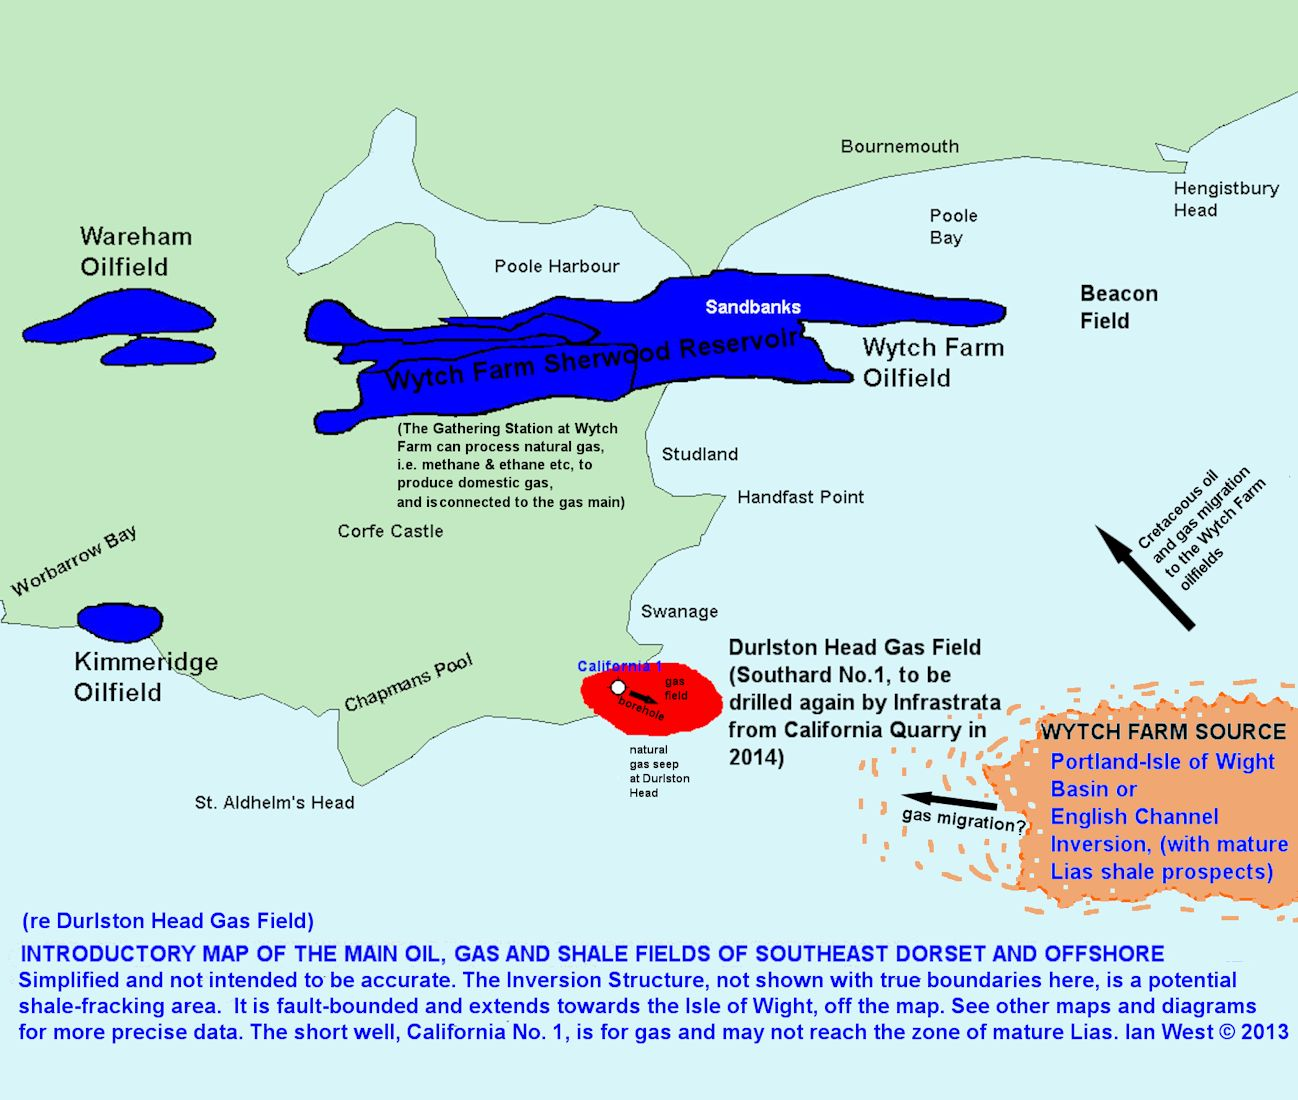 The Durlston Head Gas Field in relation to source rock areas and oil fields in the East Dorset coastal region